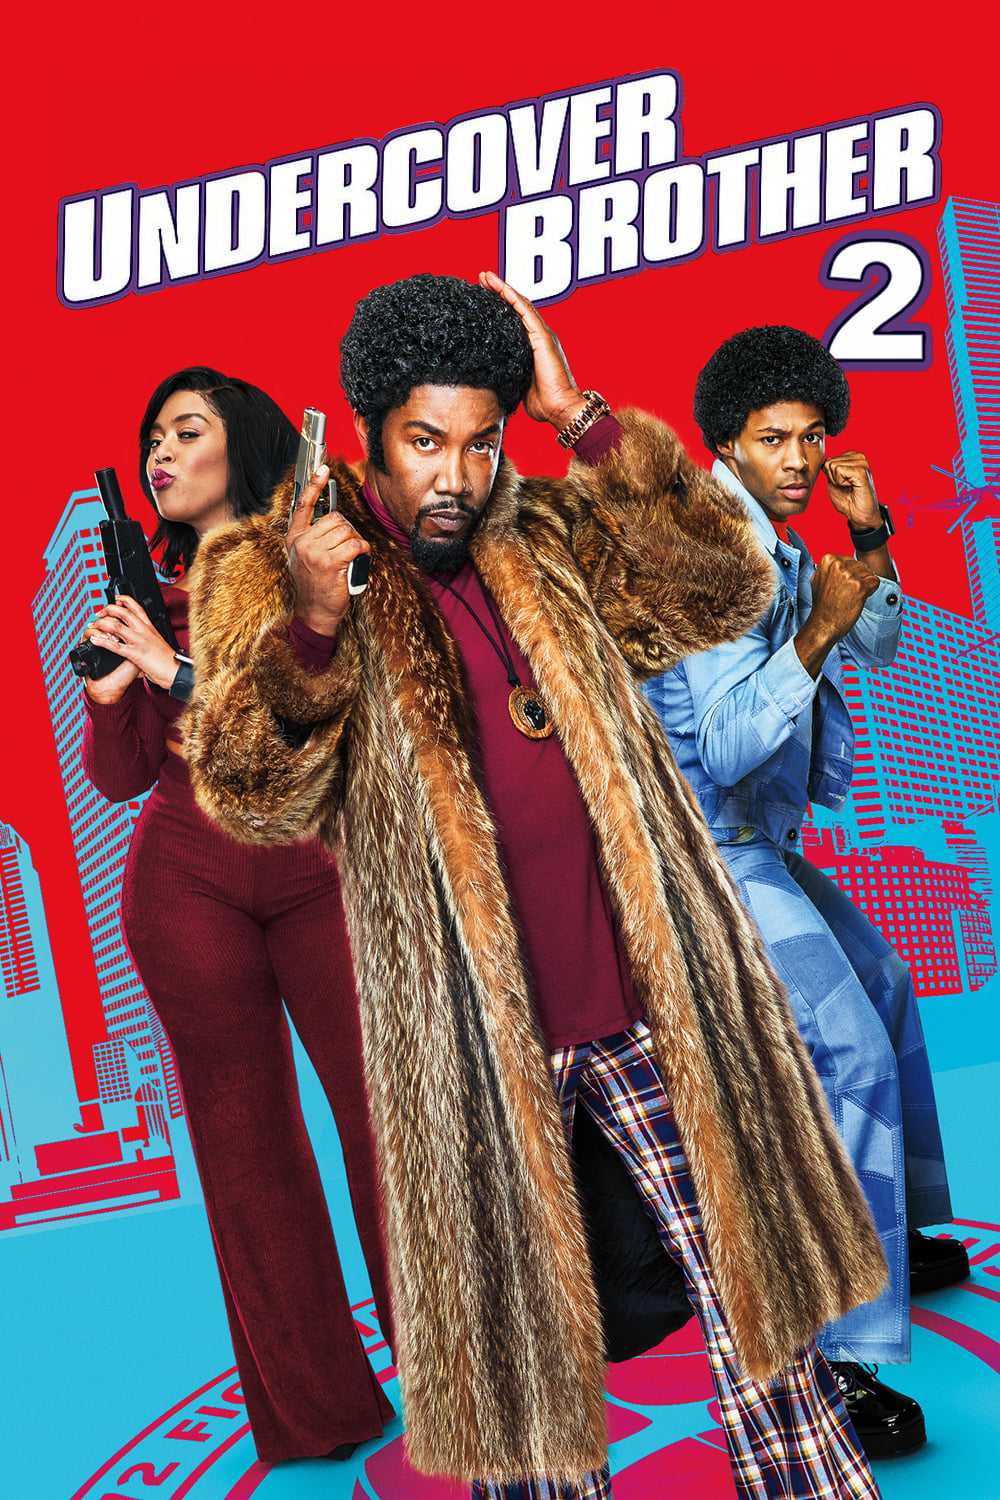 Undercover Brother 2 (2019)